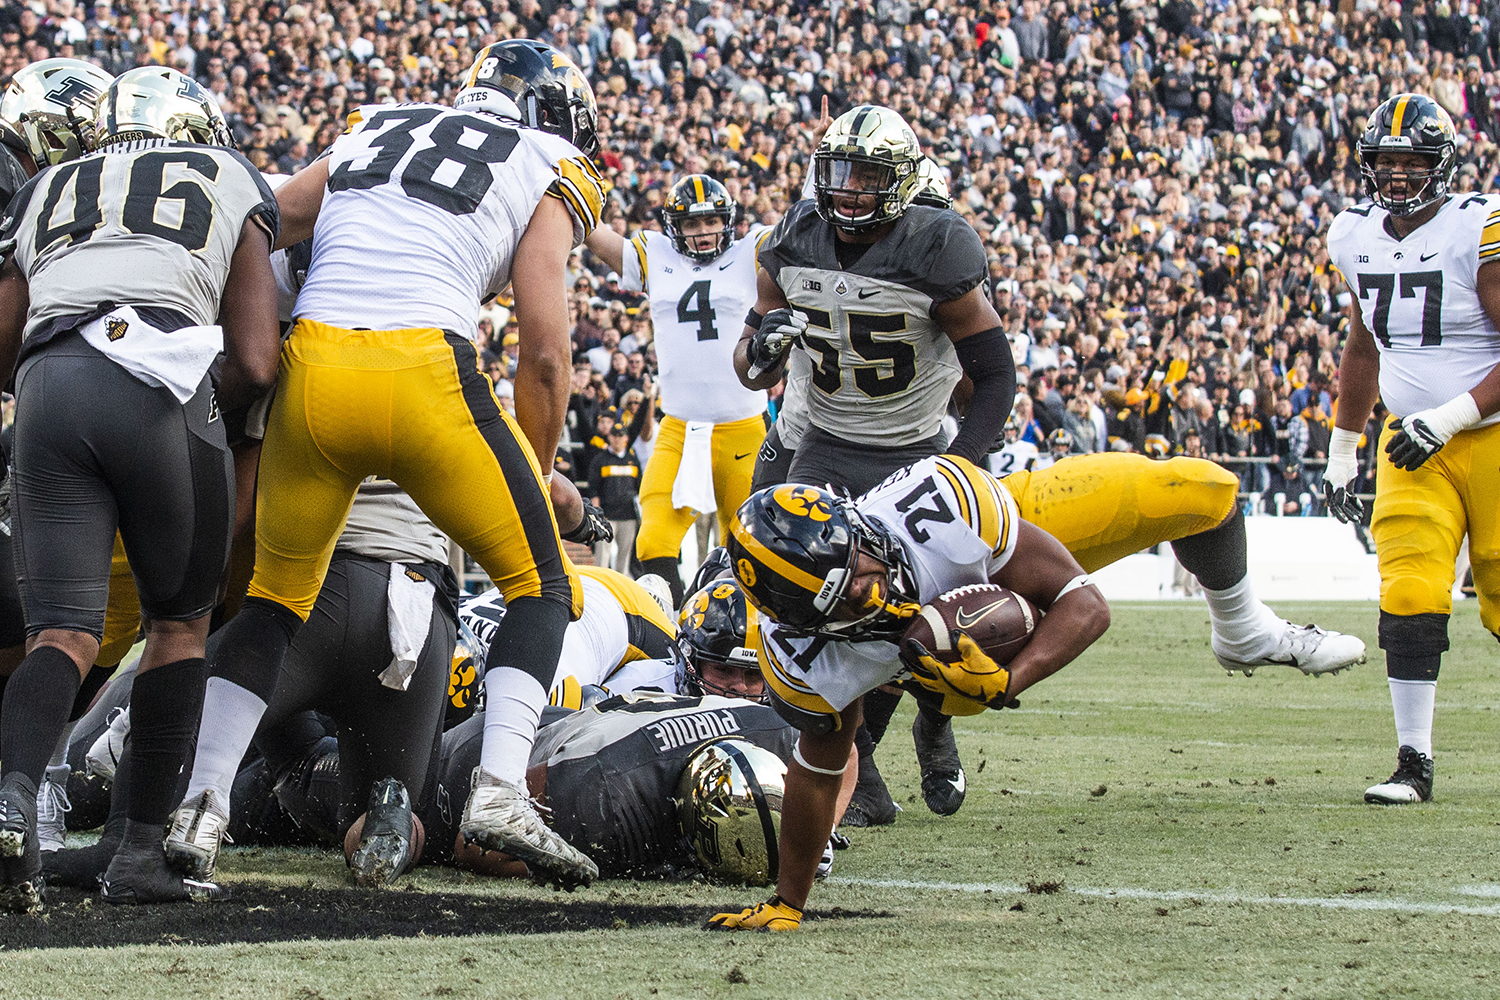 Iowa+running+back+Ivory+Kelly-Martin+%2821%29+scores+a+touchdown+during+the+Iowa%2FPurdue+game+at+Ross-Ade+Stadium+in+West+Lafayette%2C+Ind.+on+Saturday%2C+November+3%2C+2018.+The+Boilermakers+defeated+the+Hawkeyes+38-36.+